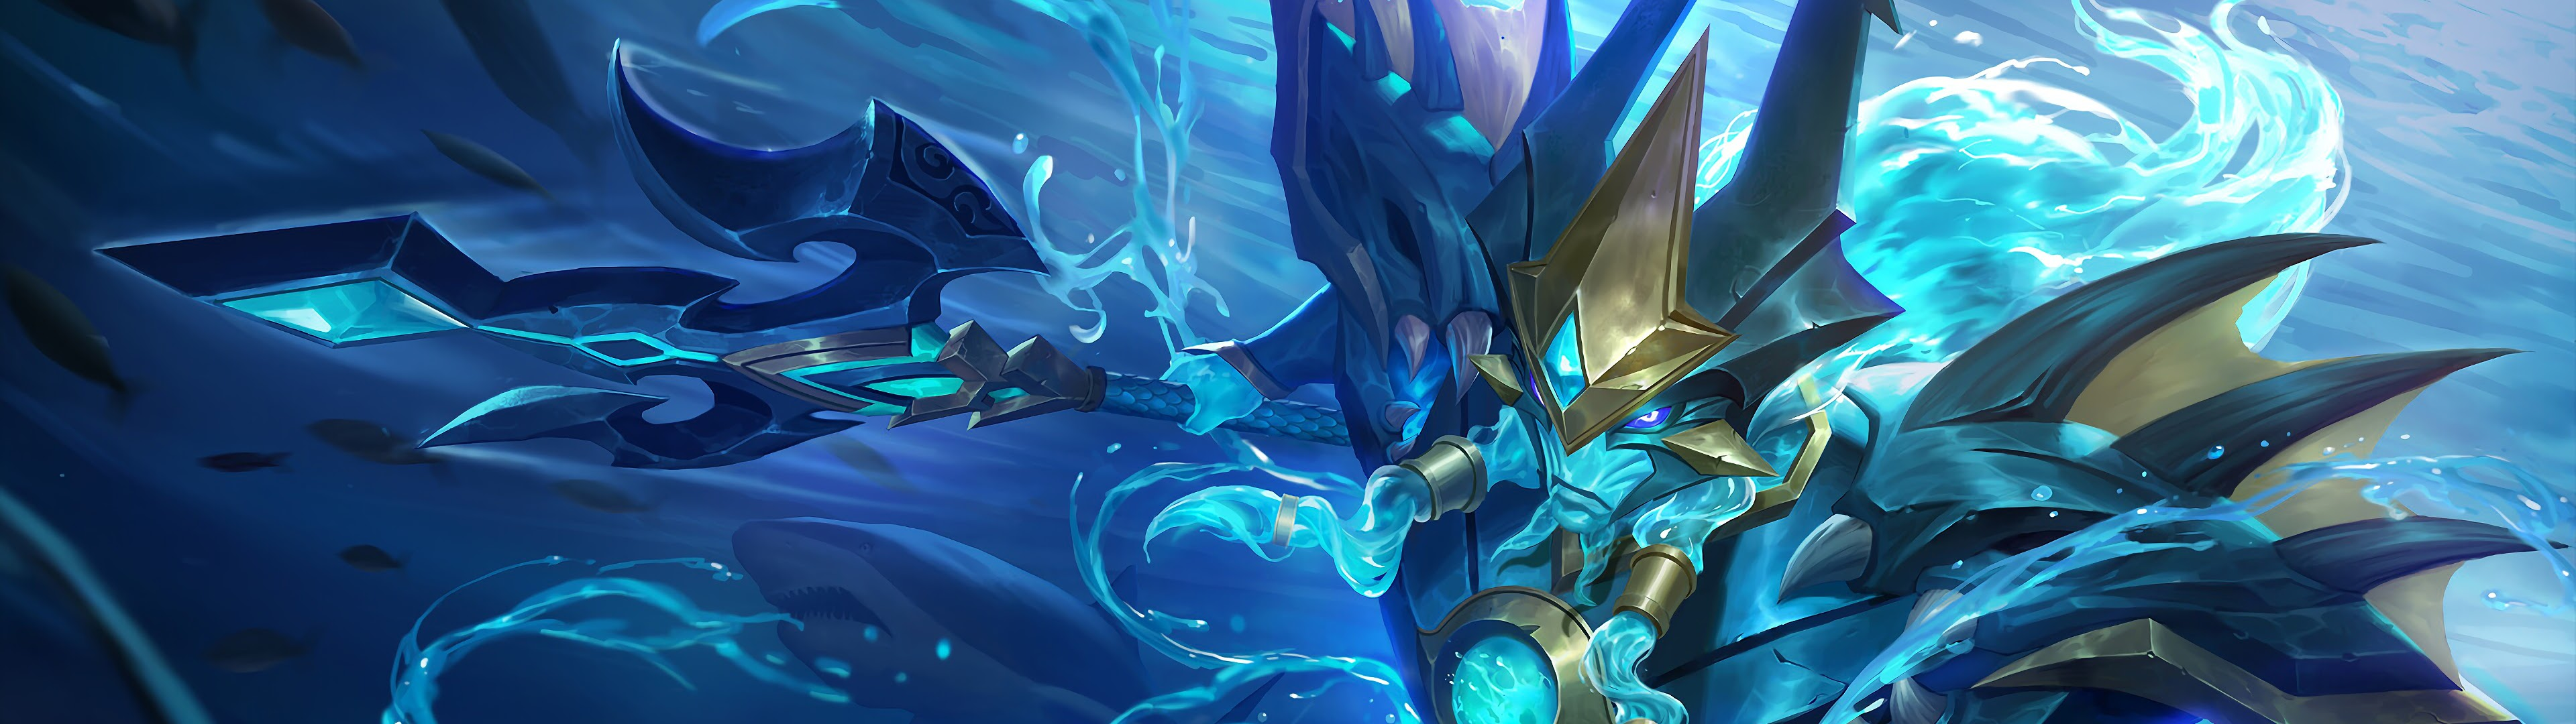 Alpha Sea Gladiator Skin Mobile Legends 4K Wallpaper #37